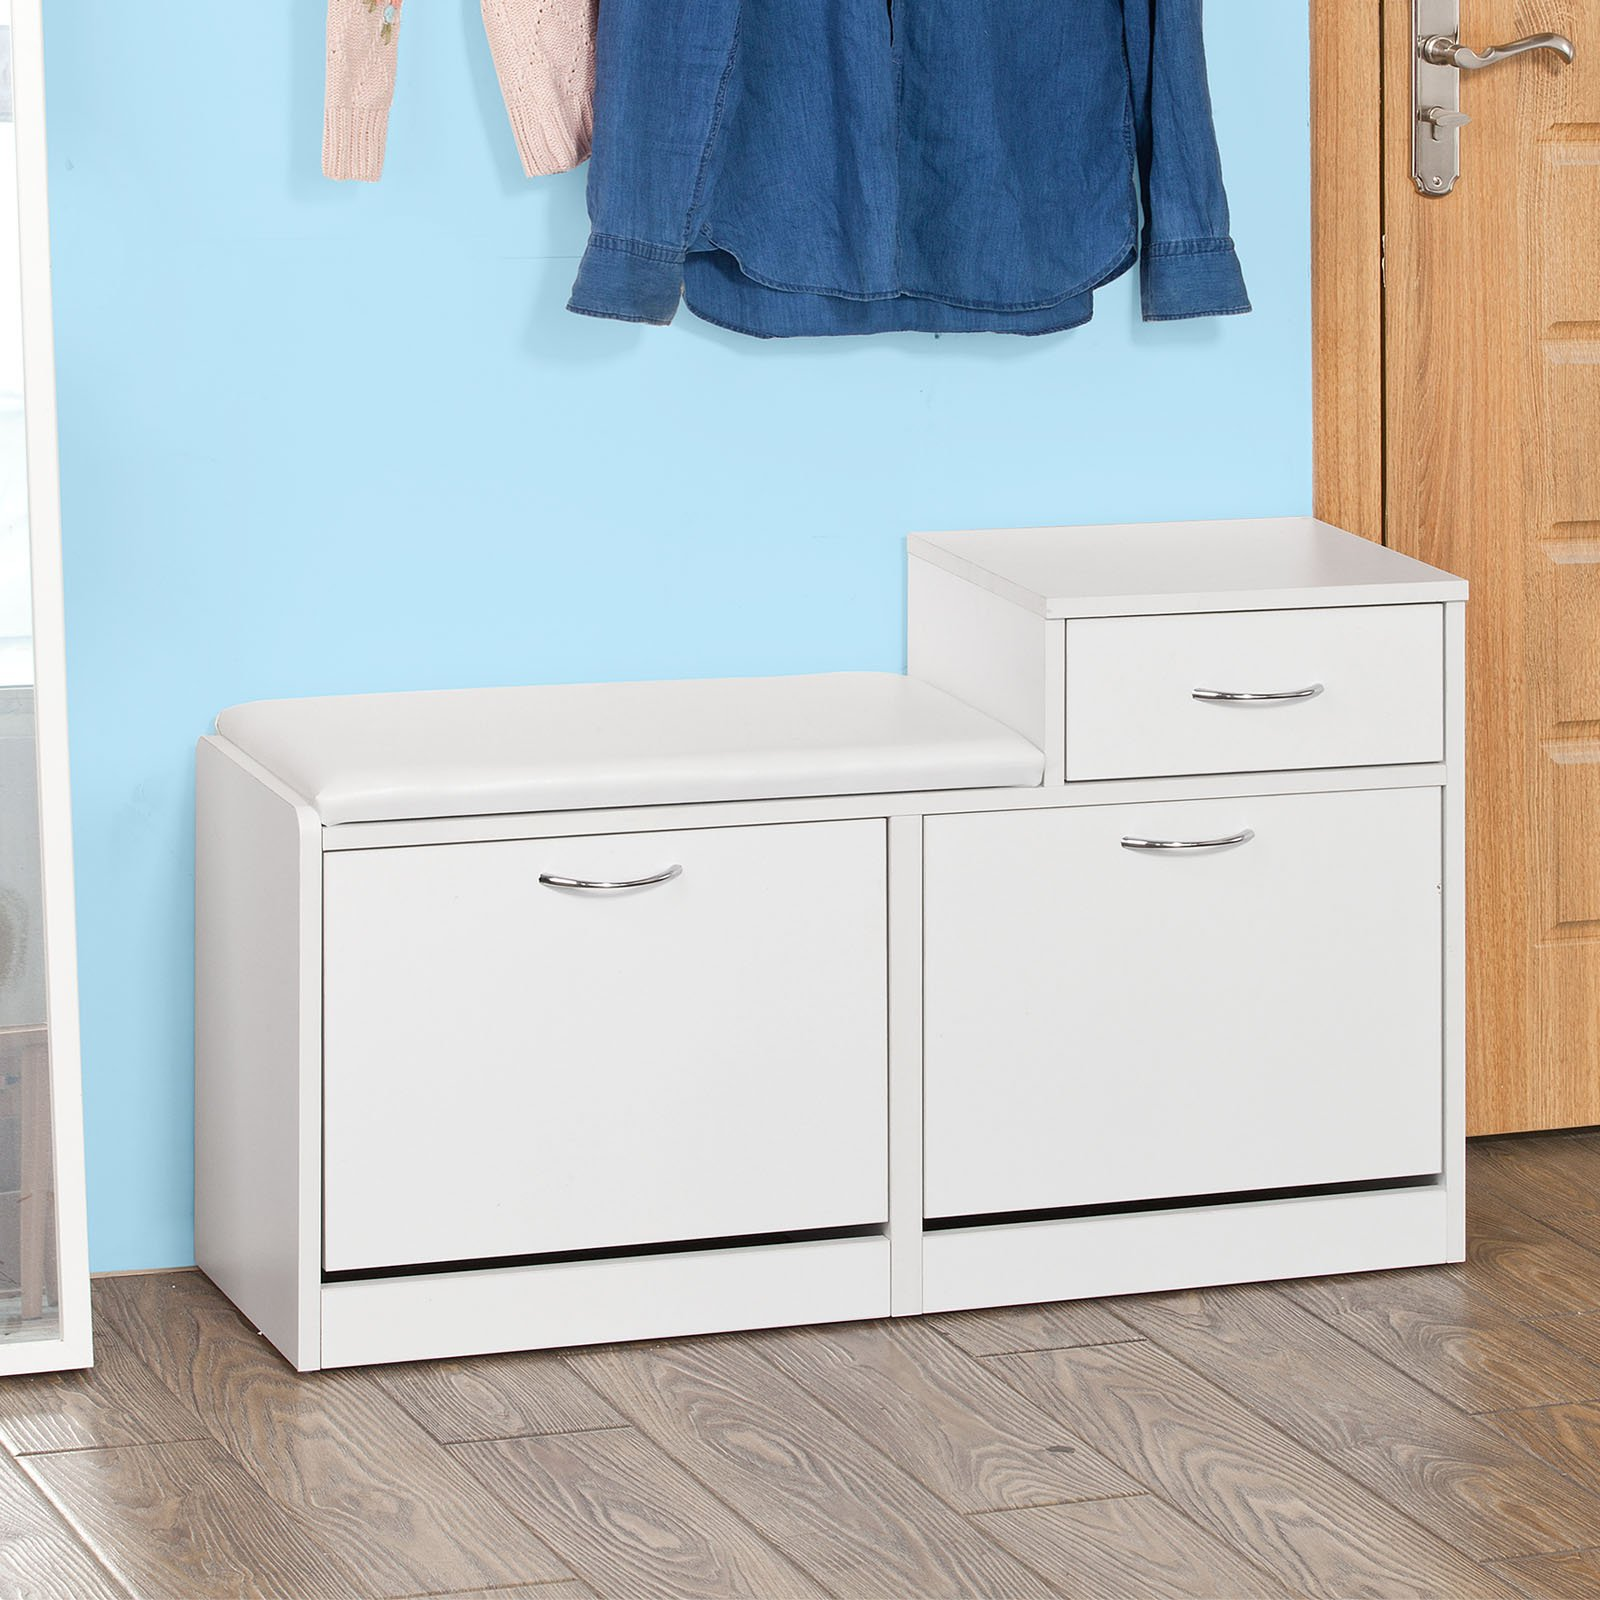 Haotian Shoe Storage Bench with Padded Seat and Drawer, Three Tiers Flip-drawer Shoe Cabinet, Gray , FSR17-DG